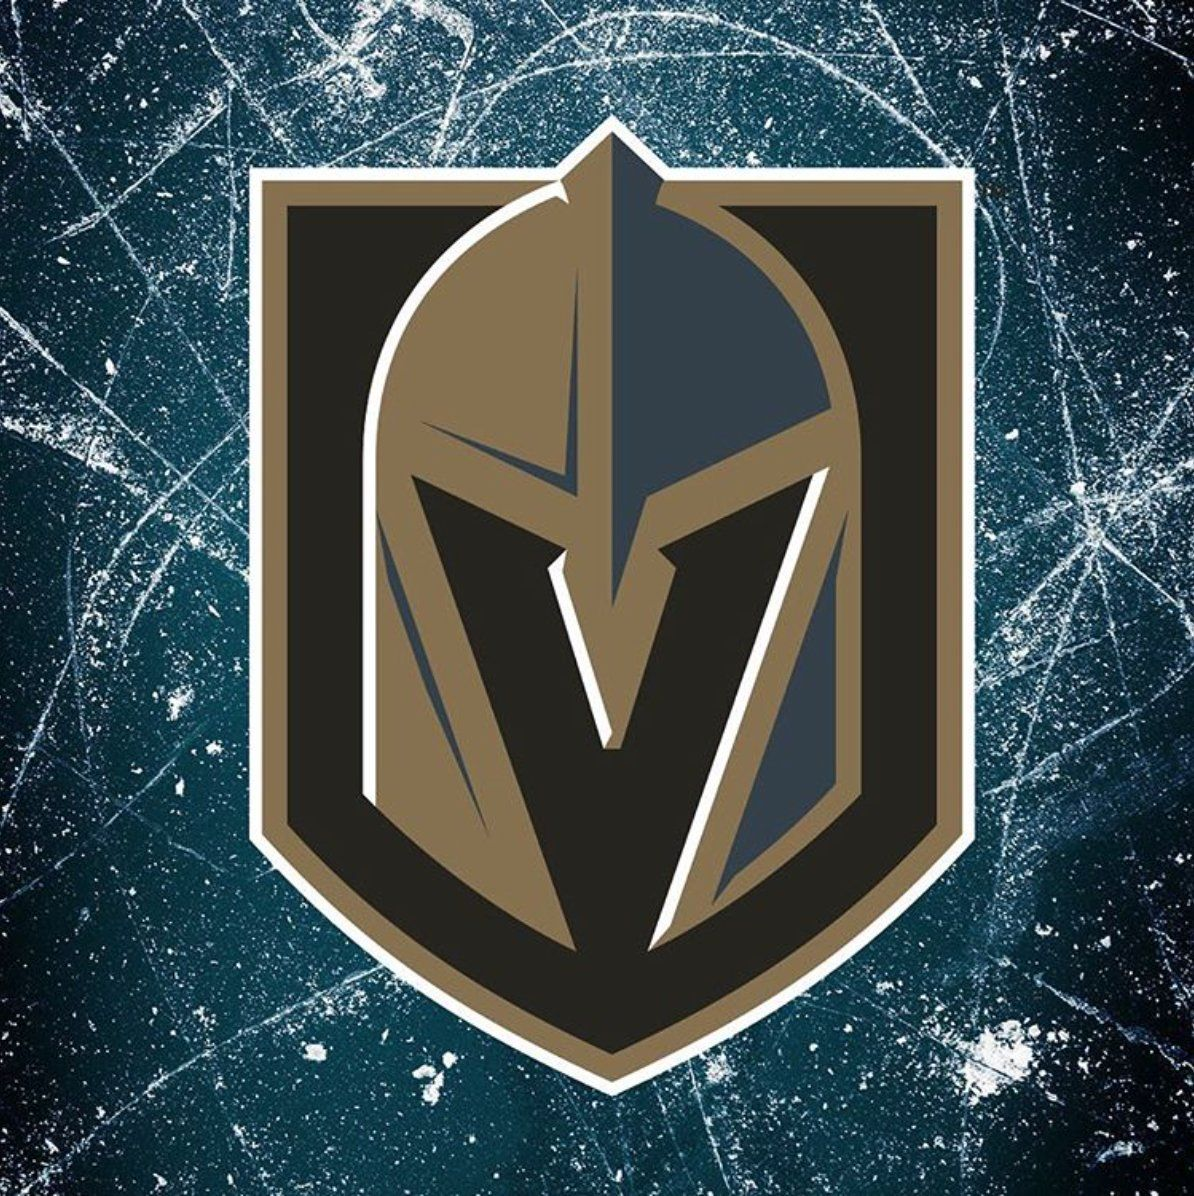 The Nhl S 31 Franchise The Vegas Golden Knights Vegas Golden Knights Logo Golden Knights Logo Golden Knights Hockey